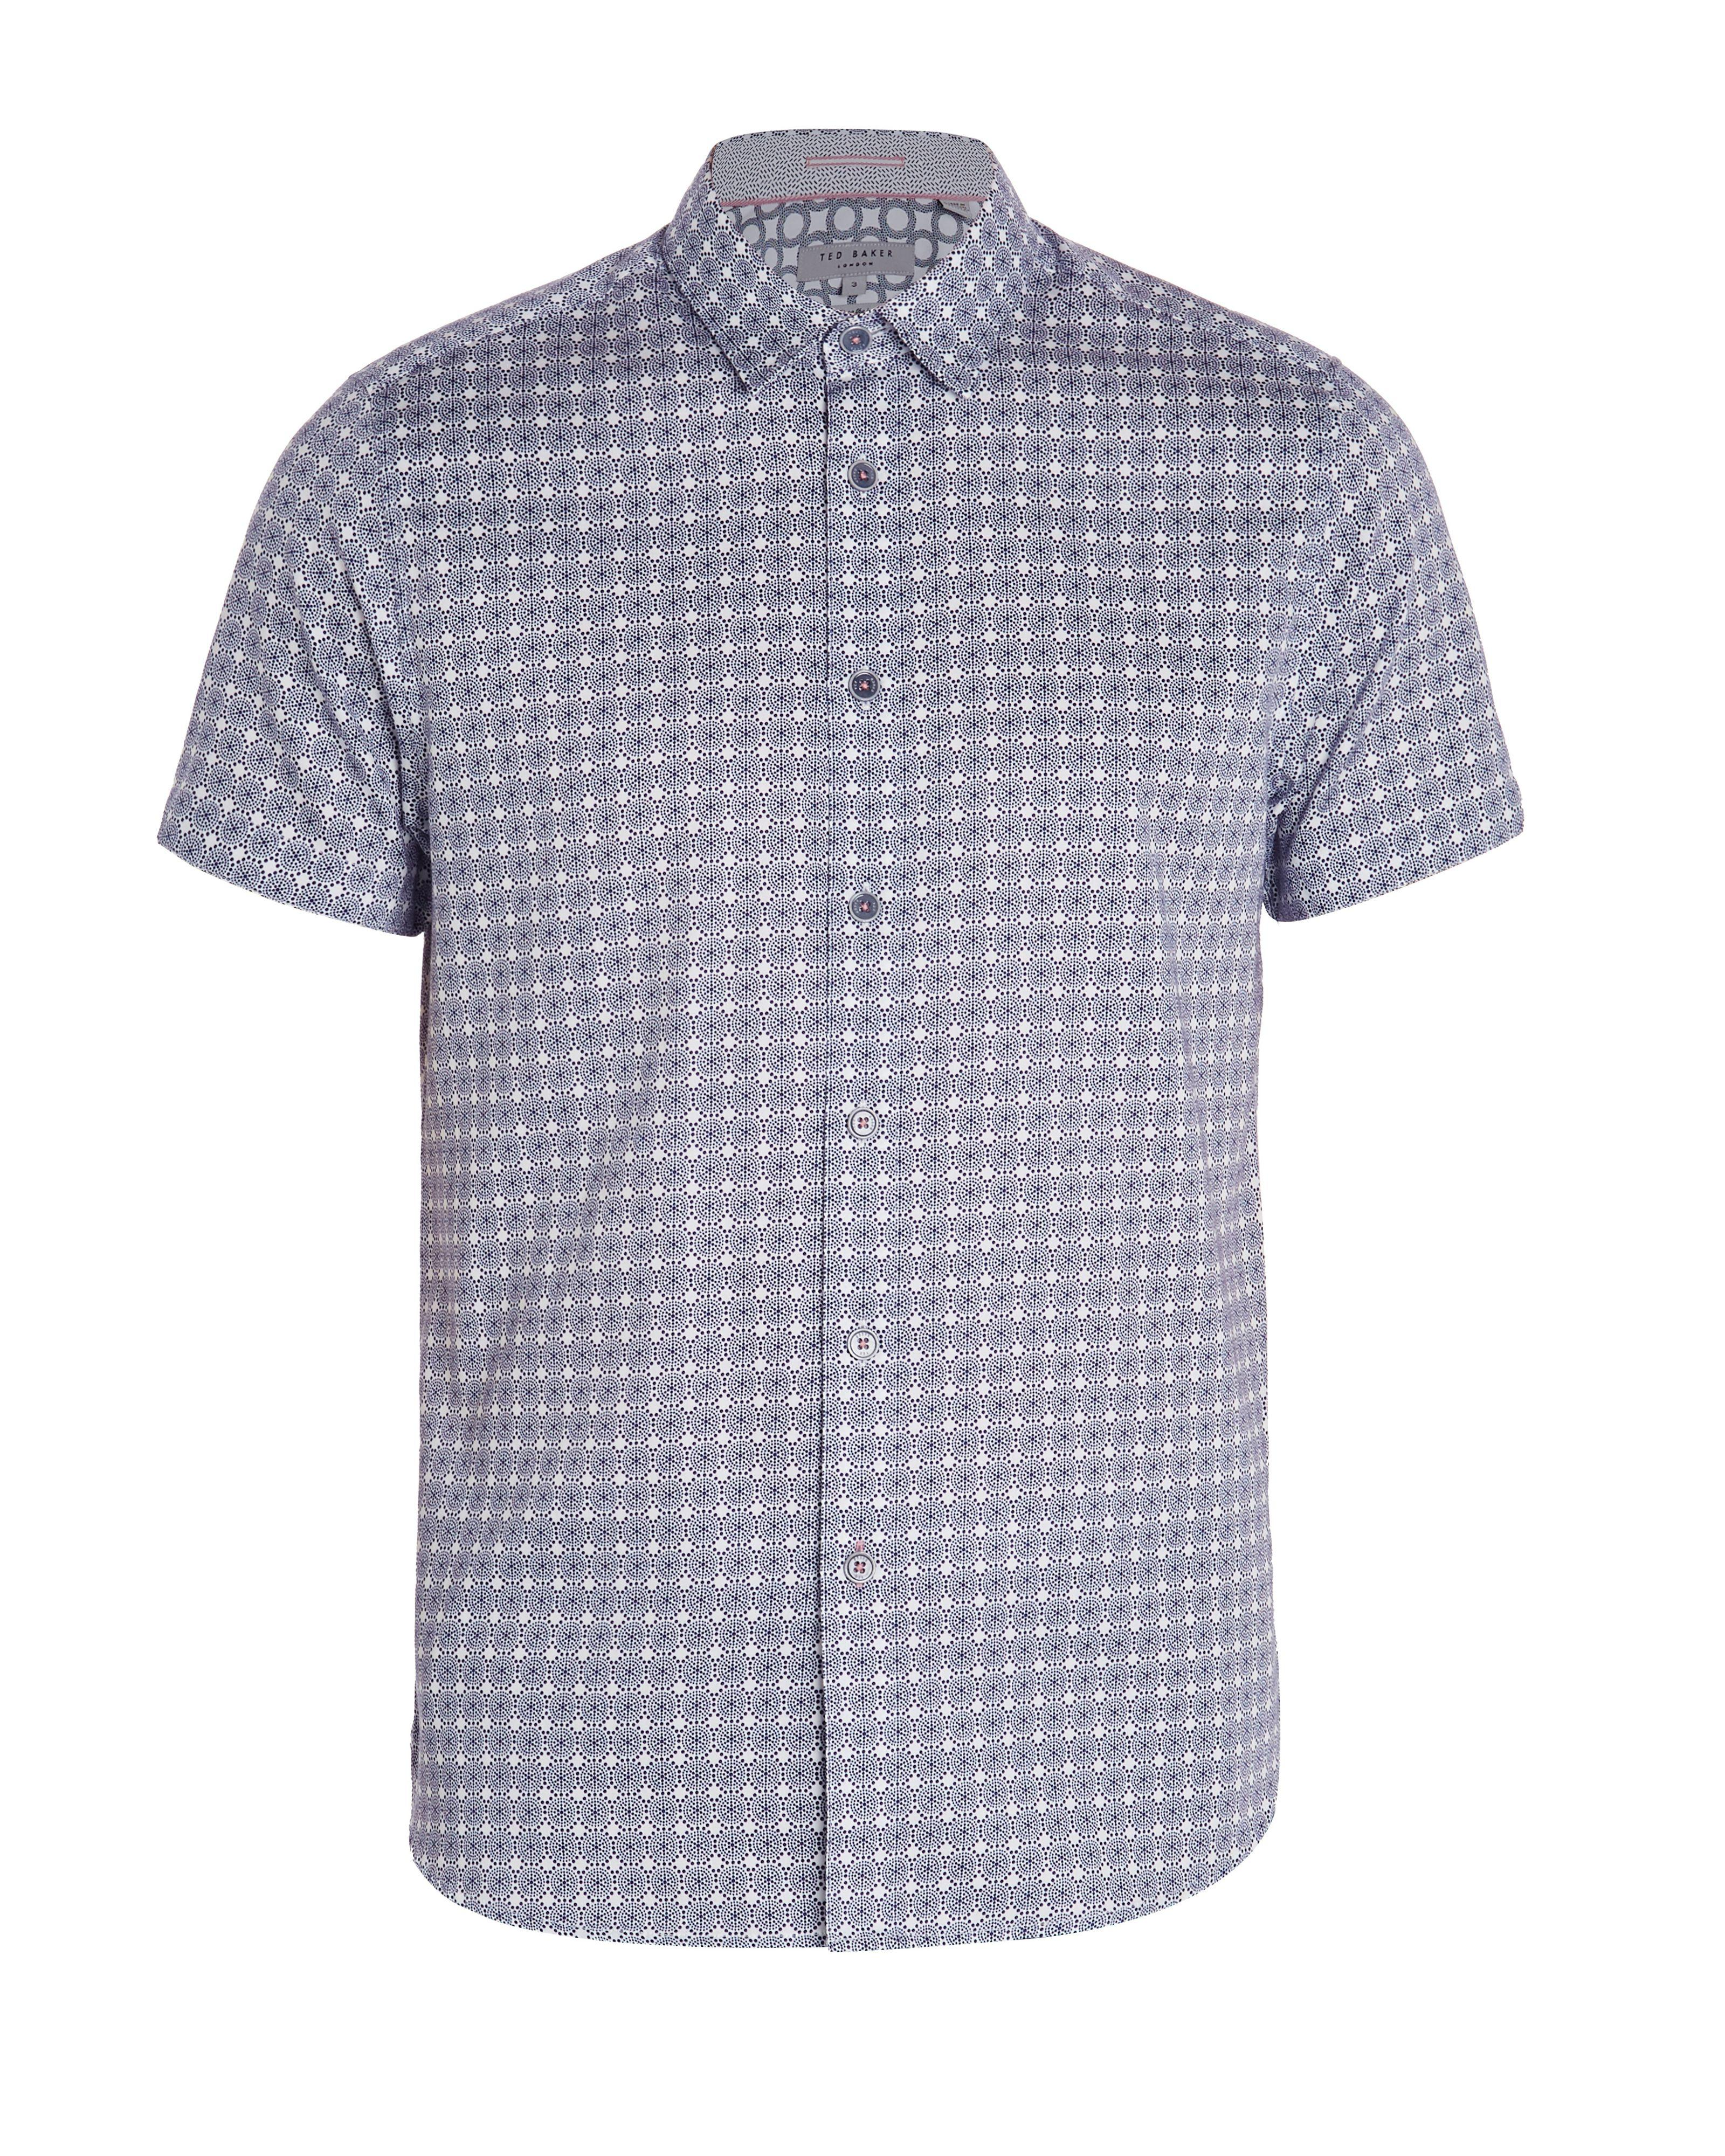 19aae521f Ted Baker Men s Modmo Circle Print Cotton Shirt in Blue for Men - Lyst